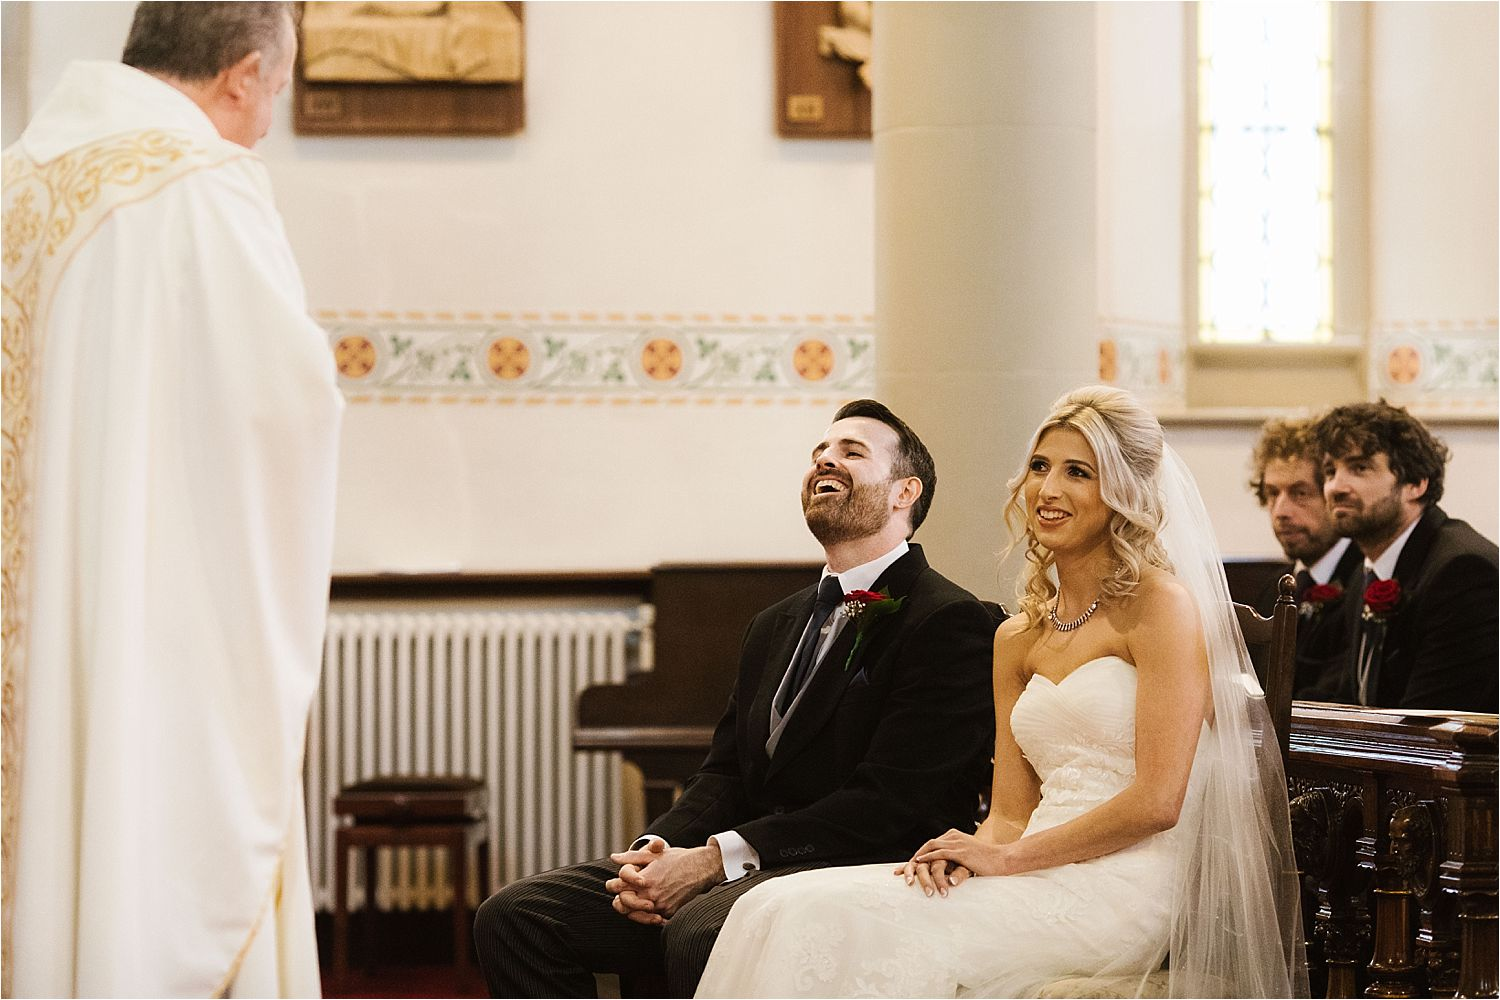 The vicar jokes with the bride and groom at their North West wedding